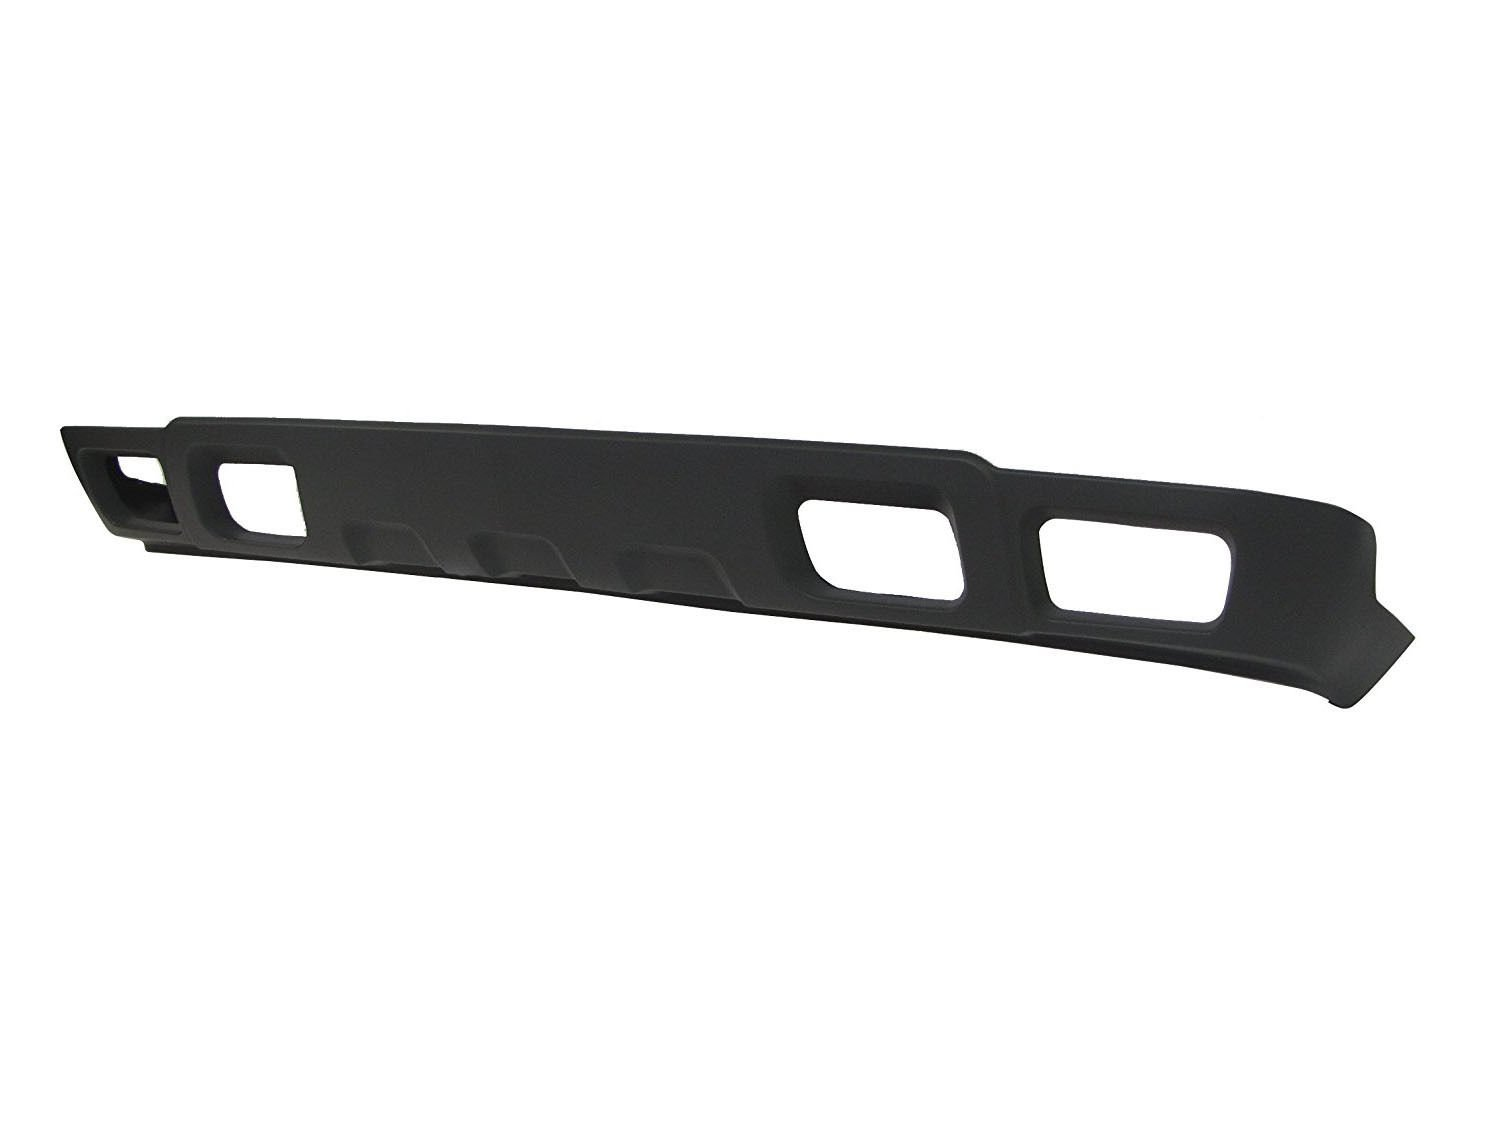 GM1092173 Textured Gray Lower Front Bumper Air Deflector for 2003-2006 Chevrolet Silverado /& Avalanche 03-06 MBI AUTO